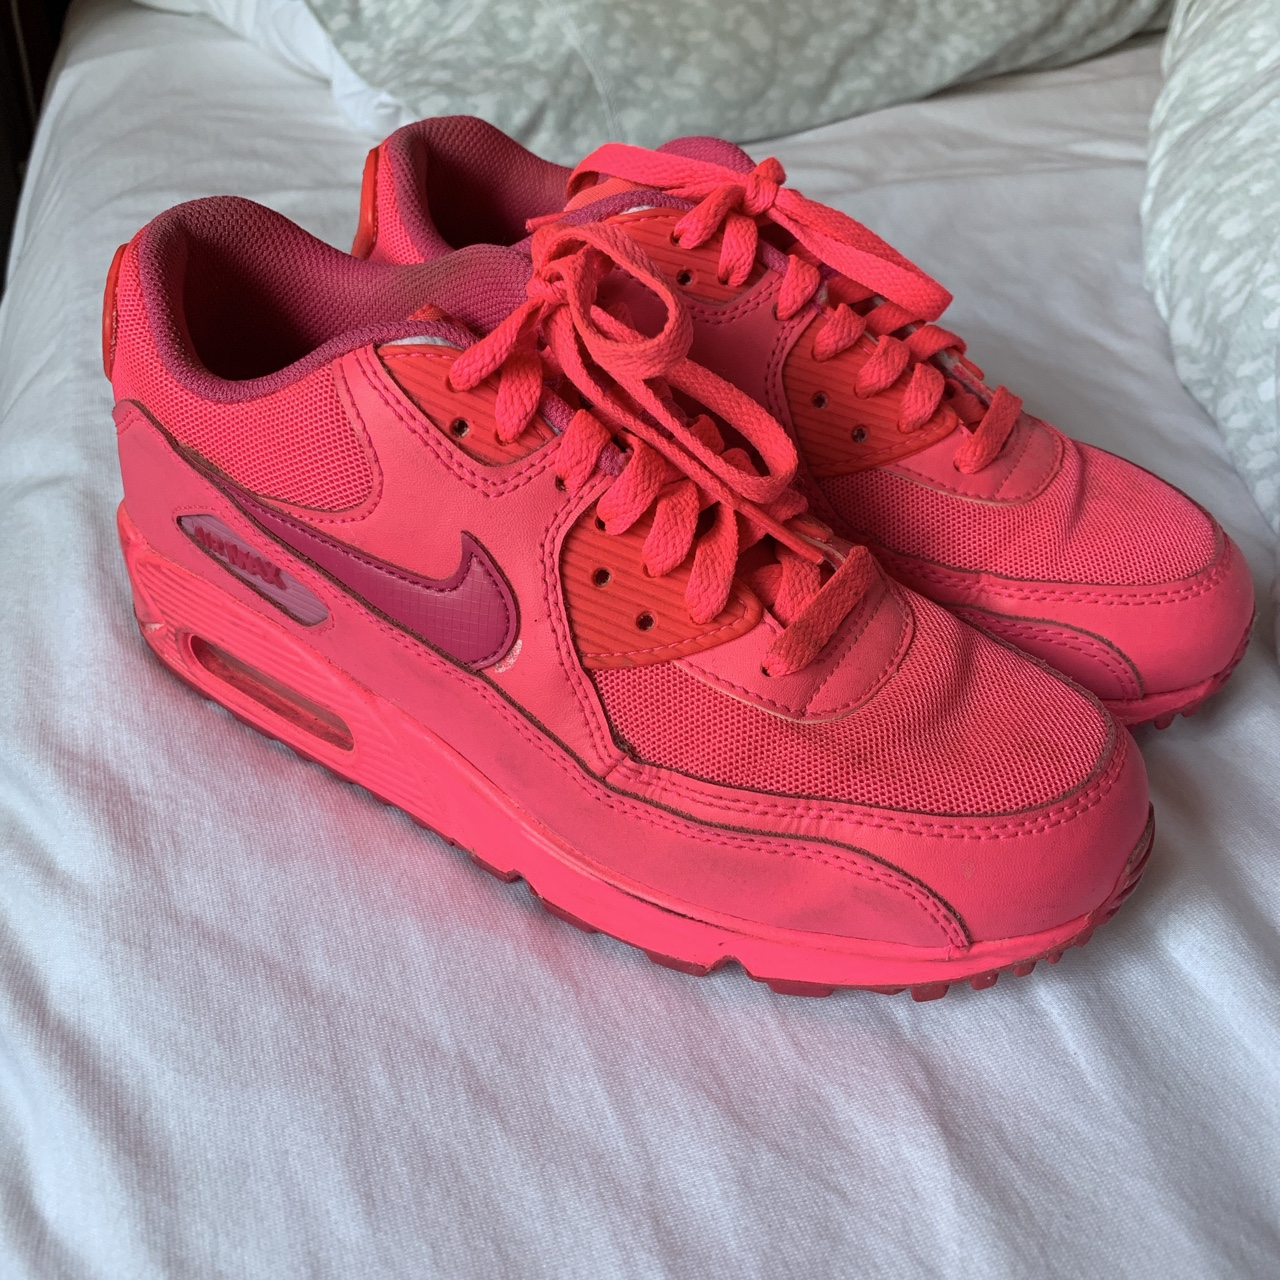 official photos 4d02b e1289 BRIGHT PINK NIKE AIR MAX 90 UK SIZE 5 - Depop